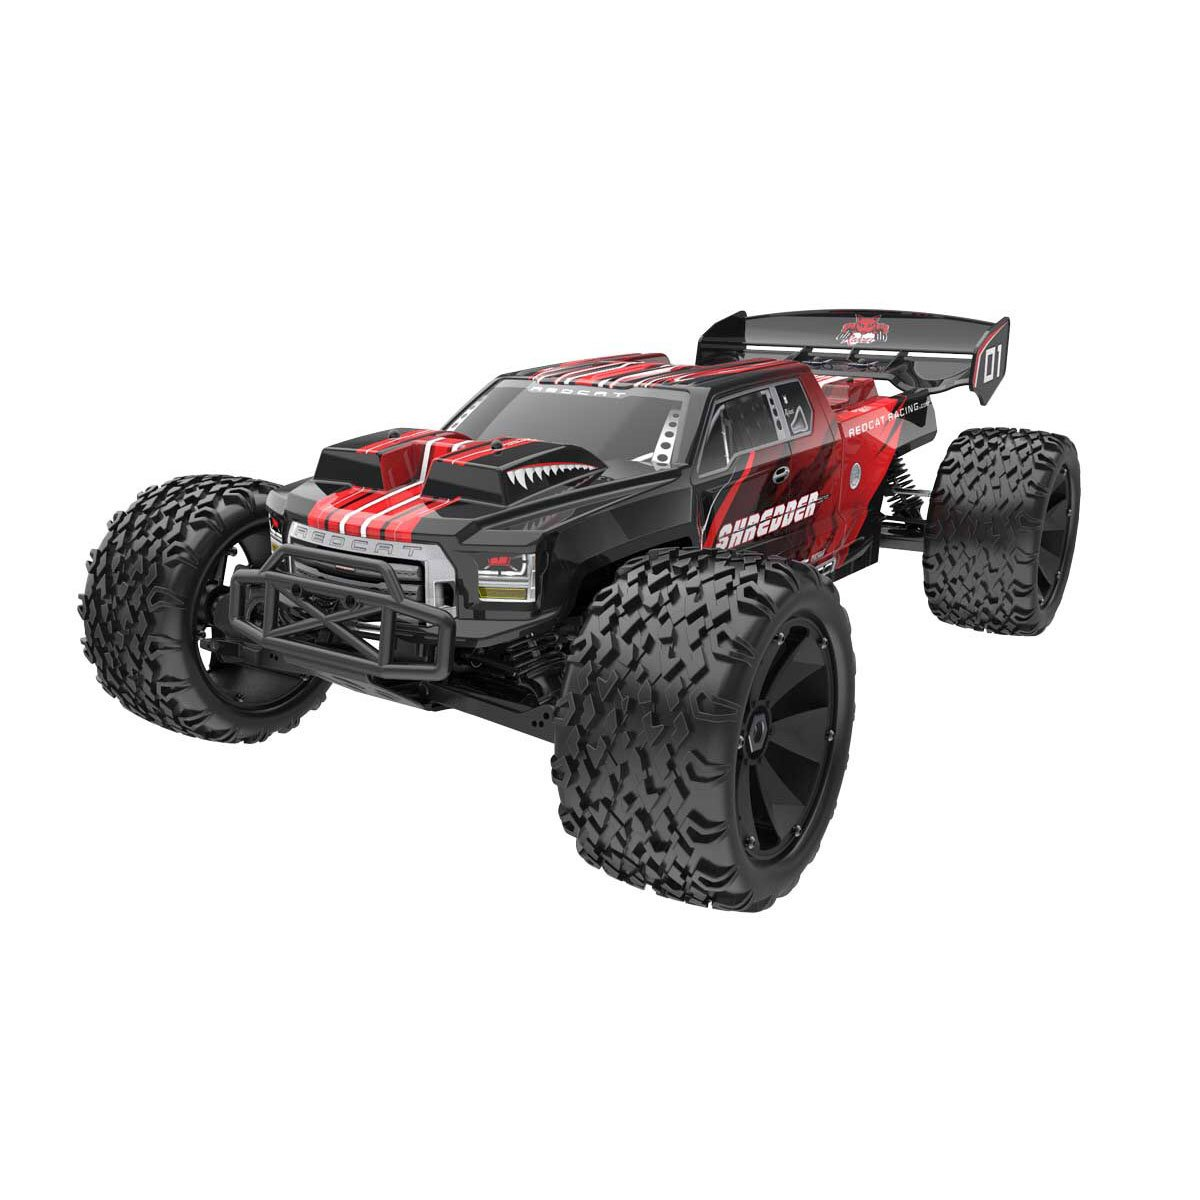 Redcat Shredder 1 6 Scale Brushless Electric Remote Control Monster Truck, Red by Redcat Racing